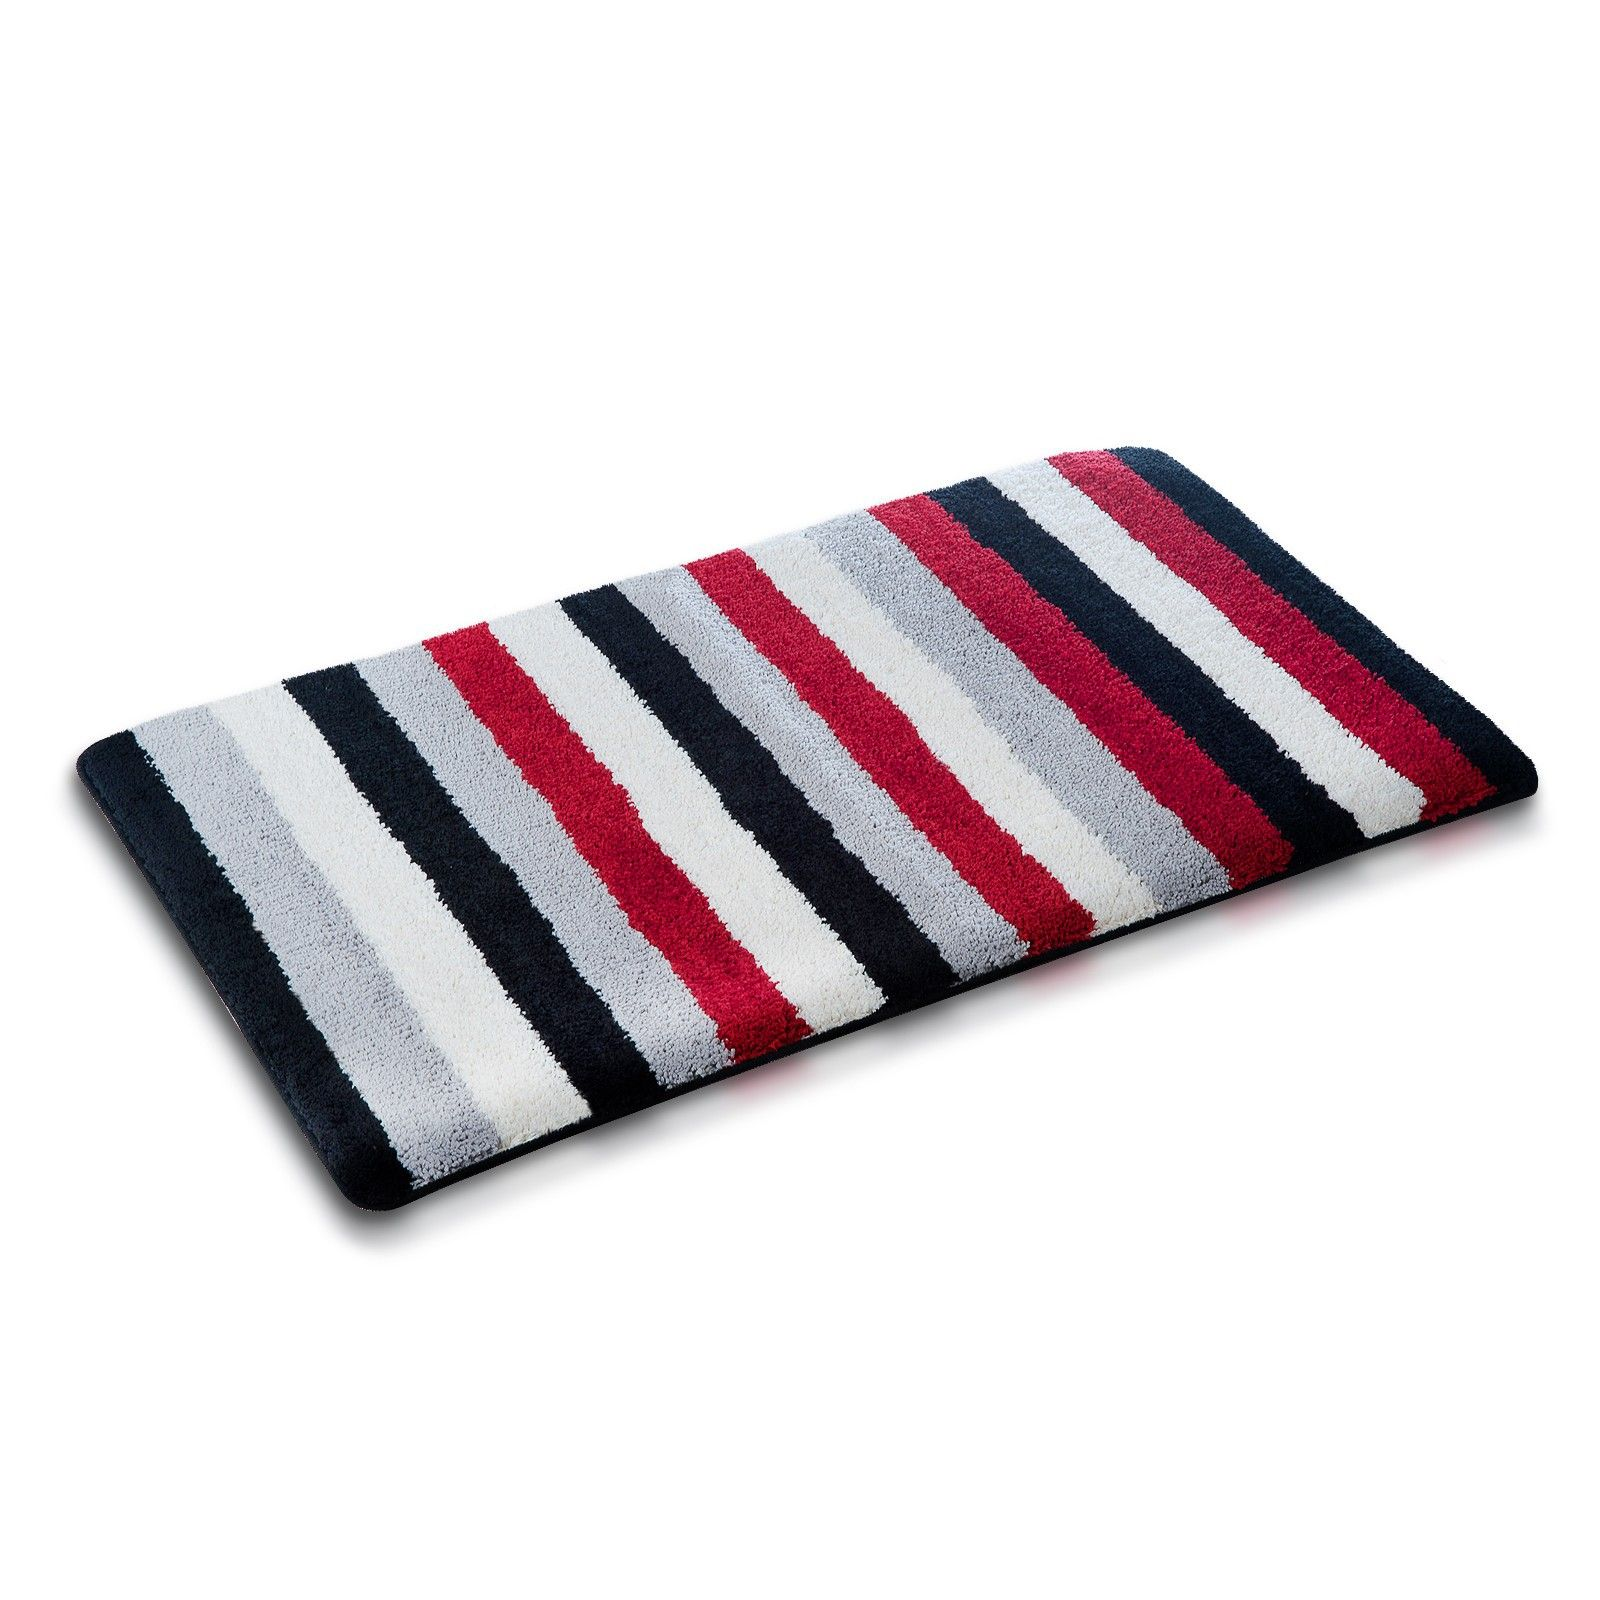 Fluffy Rugs The Striped Pattern Together With The Trendy Color